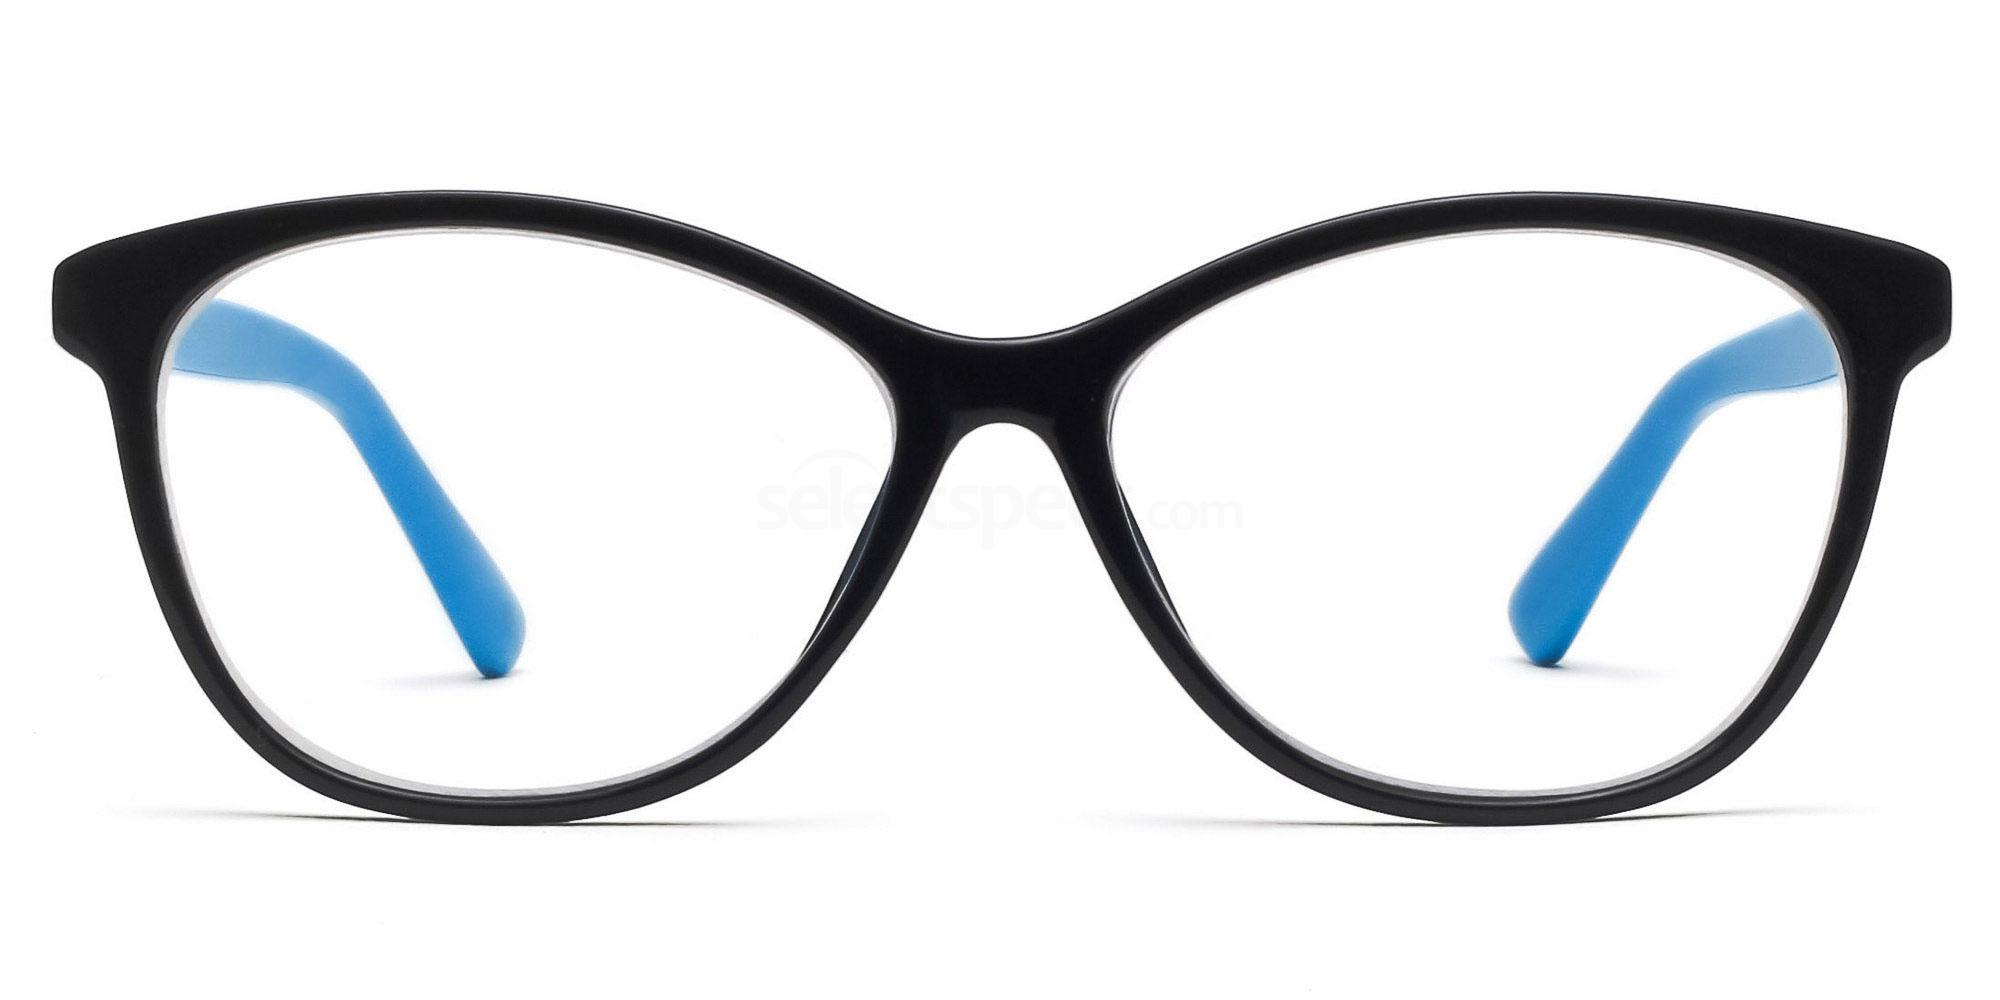 COL.88 2439 - Black and Blue Glasses, SelectSpecs